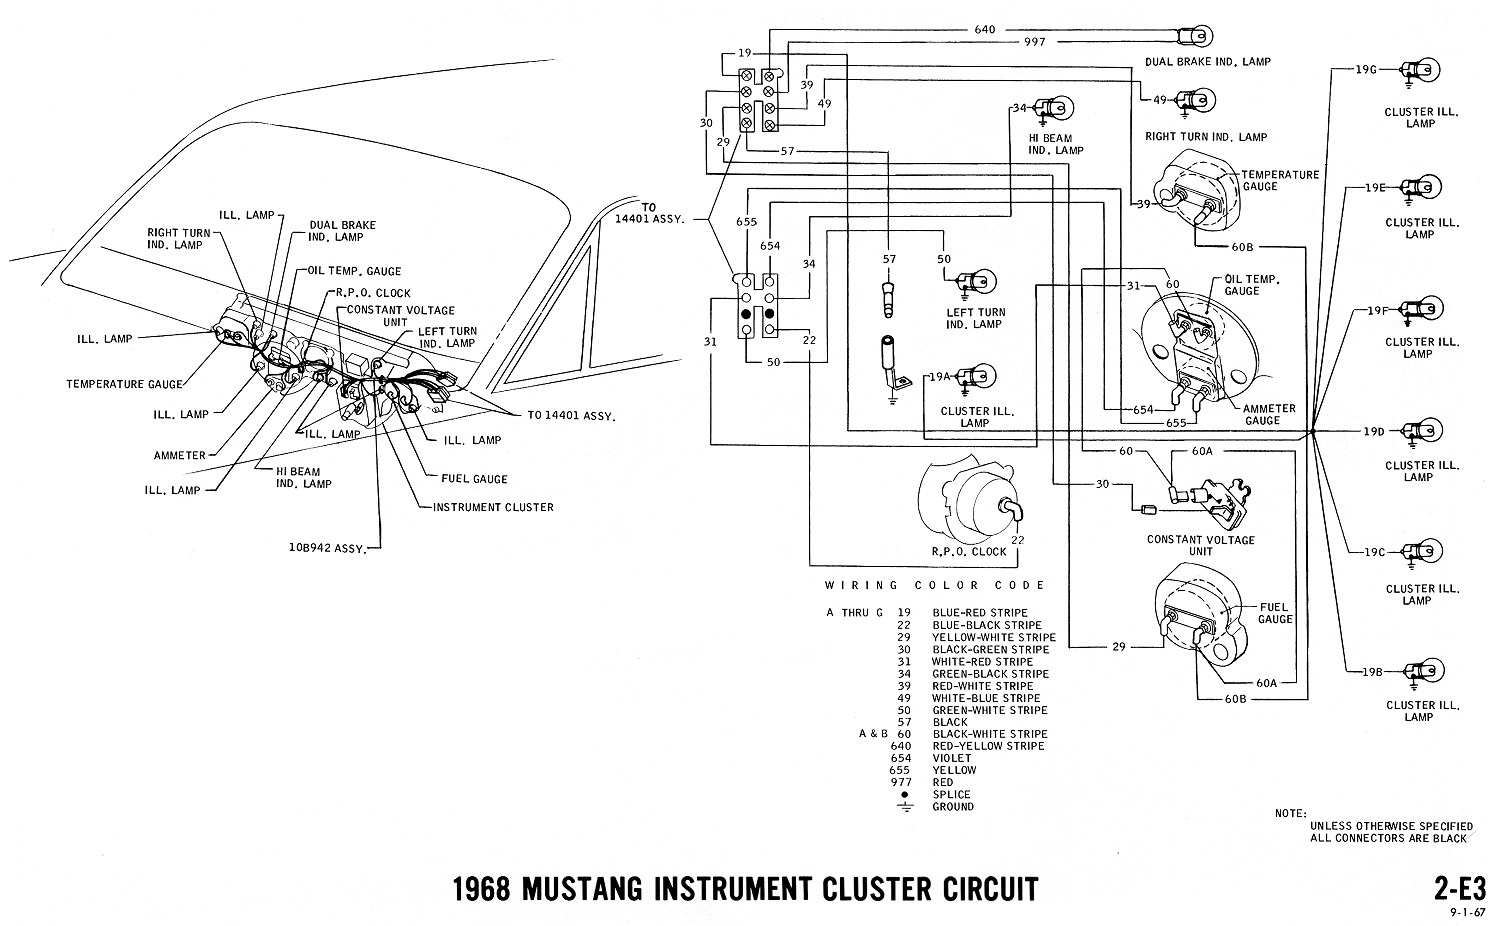 1968 mustang wiring diagram instruments 1965 mustang wiring diagram 1965 lincoln wiring diagram \u2022 wiring Rear Defroster Symbol at soozxer.org